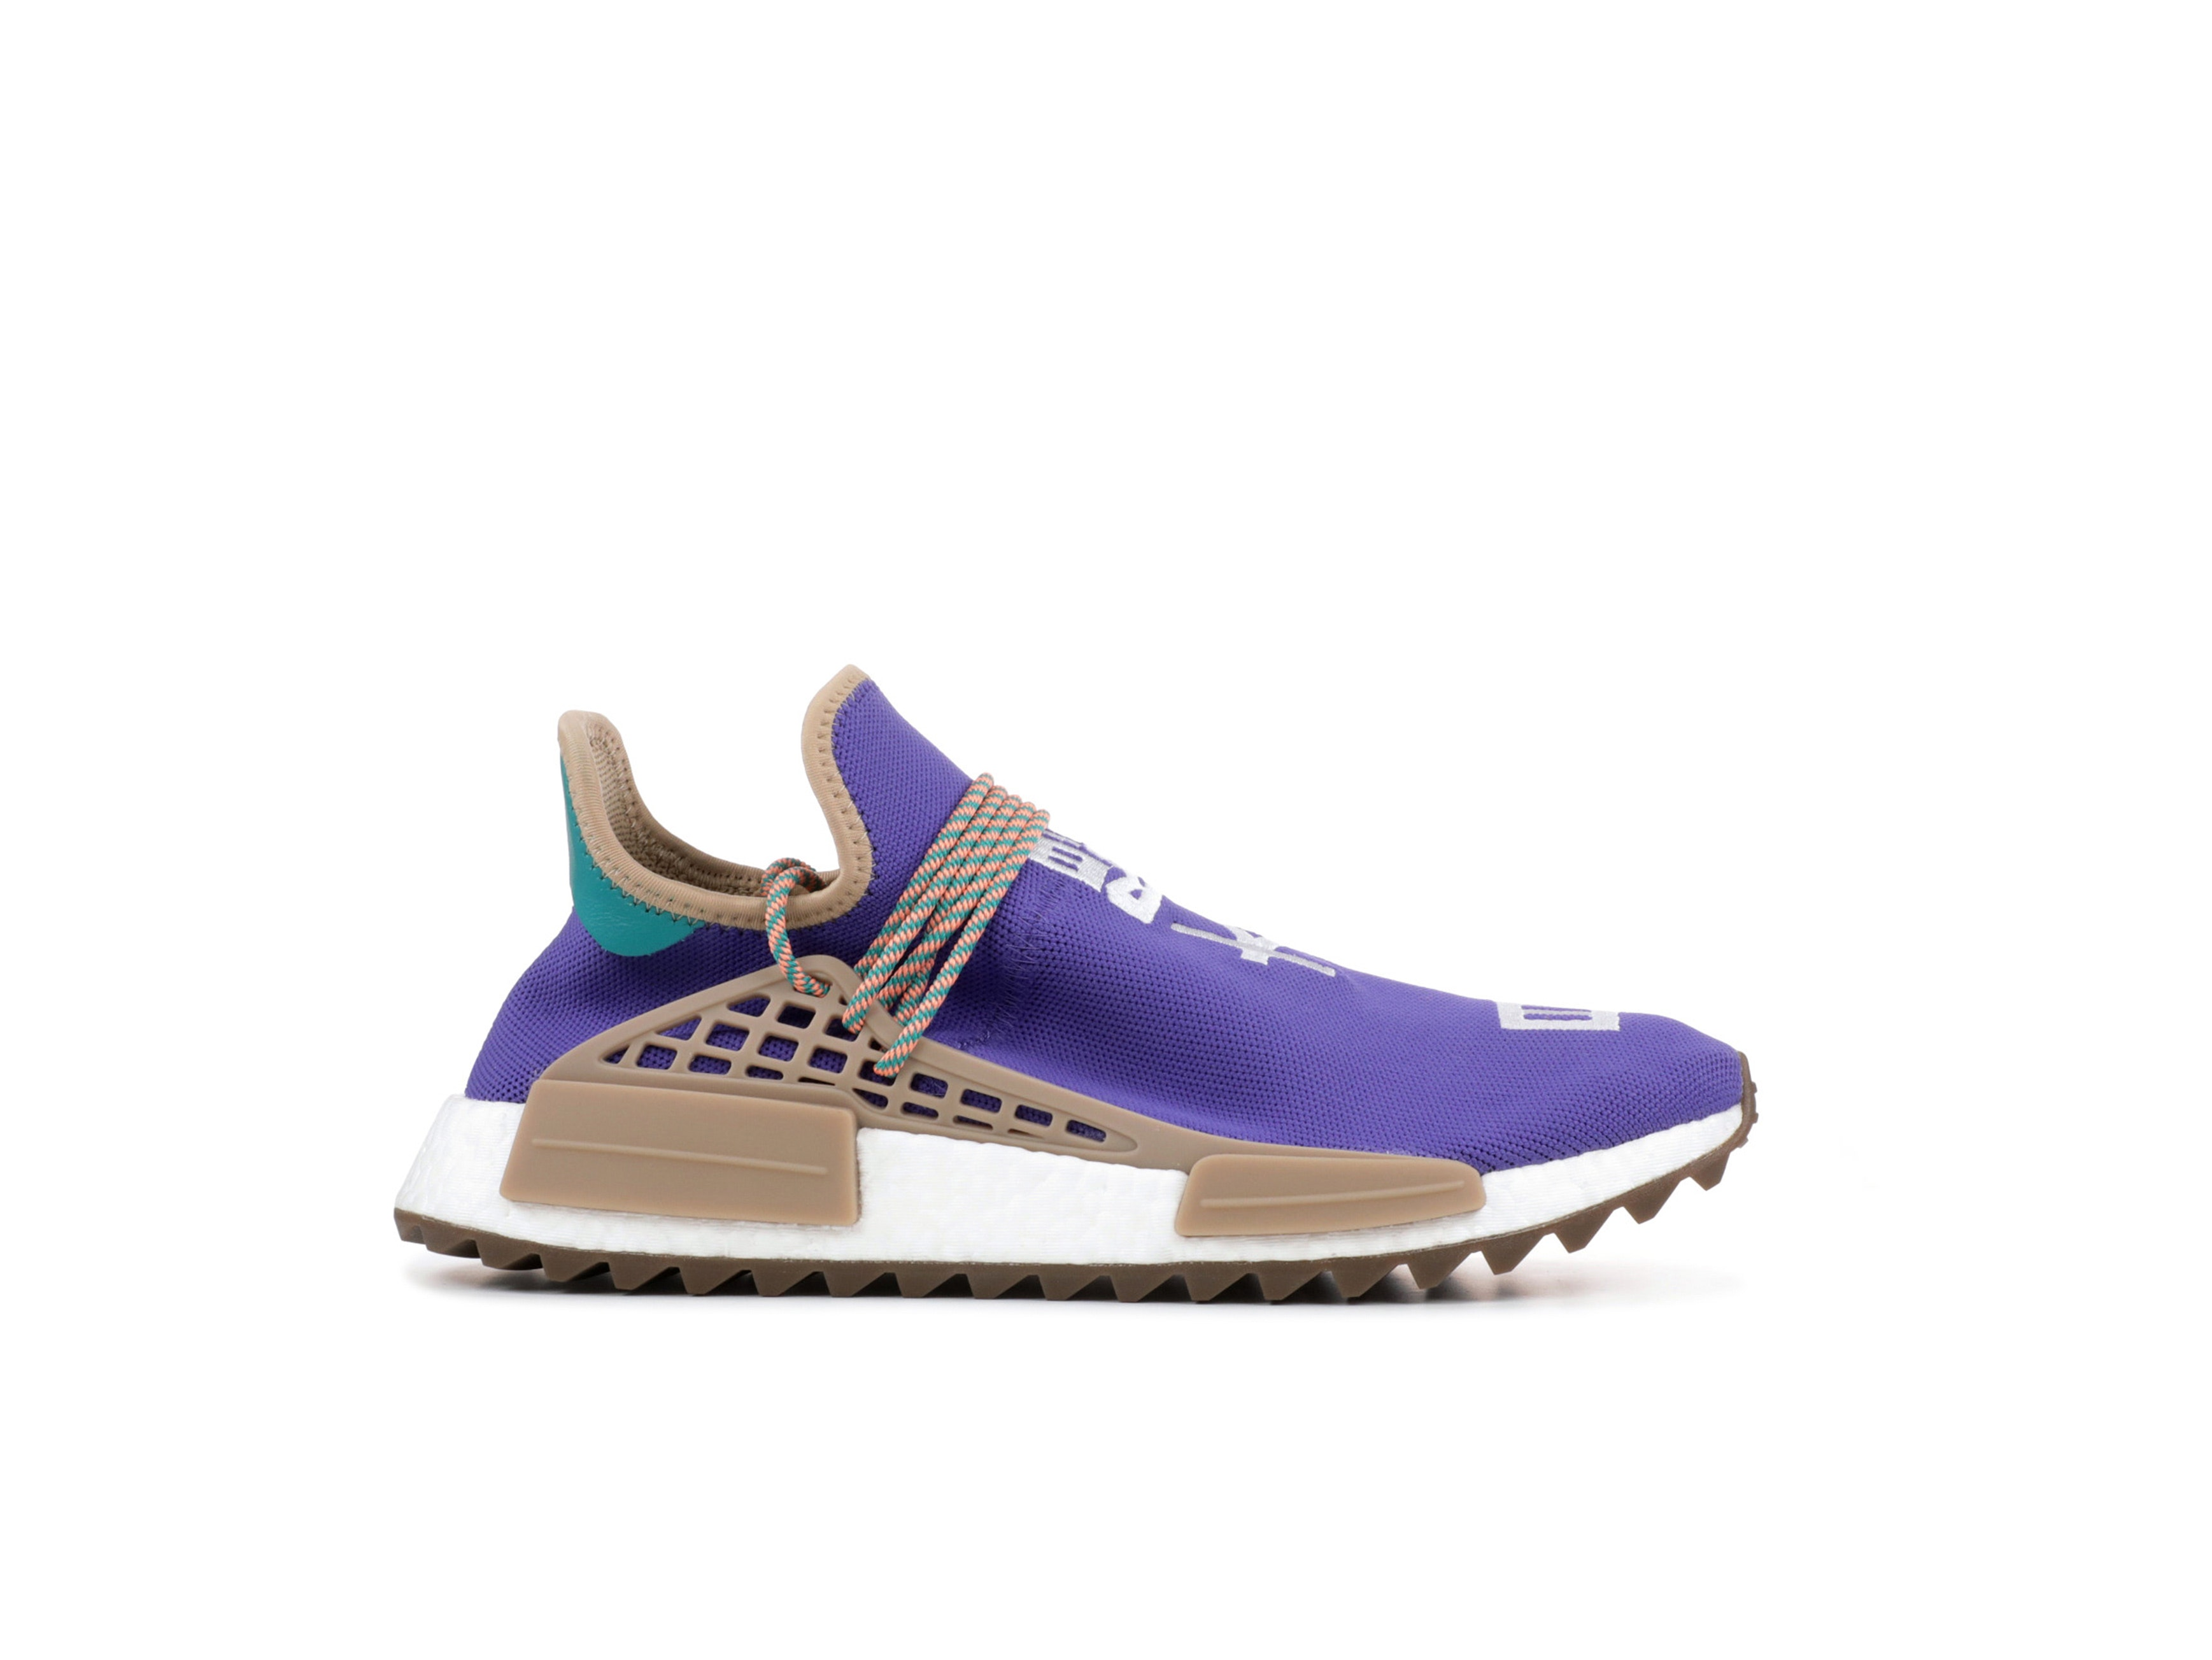 8e78f16d9bfd9 Shop NMD Human Race Trail Friends and Family Respira x Pharrell ...